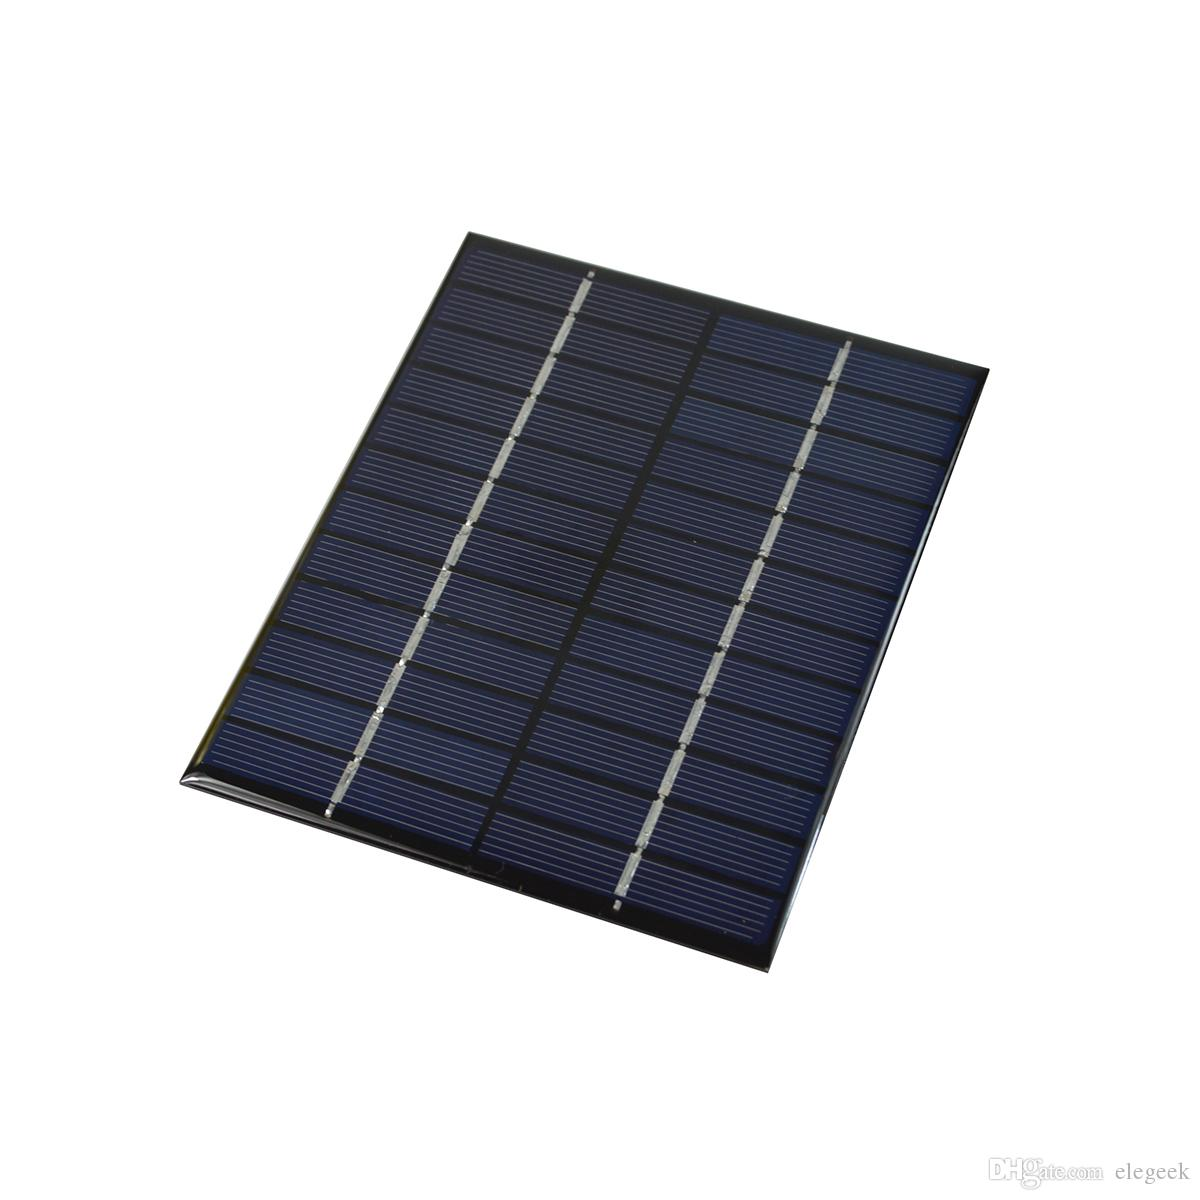 2W 6V Polycrystalline Solar Cell Panel PET Encapsulated Solar Panel on electronics manufacturing process, oil manufacturing process, fastener manufacturing process, battery manufacturing process, solar manufacturing process, petrochemical manufacturing process, drilling manufacturing process, visual manufacturing process, engine manufacturing process, door manufacturing process, composite manufacturing process, furniture manufacturing process, auto mobile manufacturing process, automotive manufacturing process, glove manufacturing process, metal manufacturing process, mechanical manufacturing process, hose manufacturing process, insulation manufacturing process, asbestos manufacturing process,